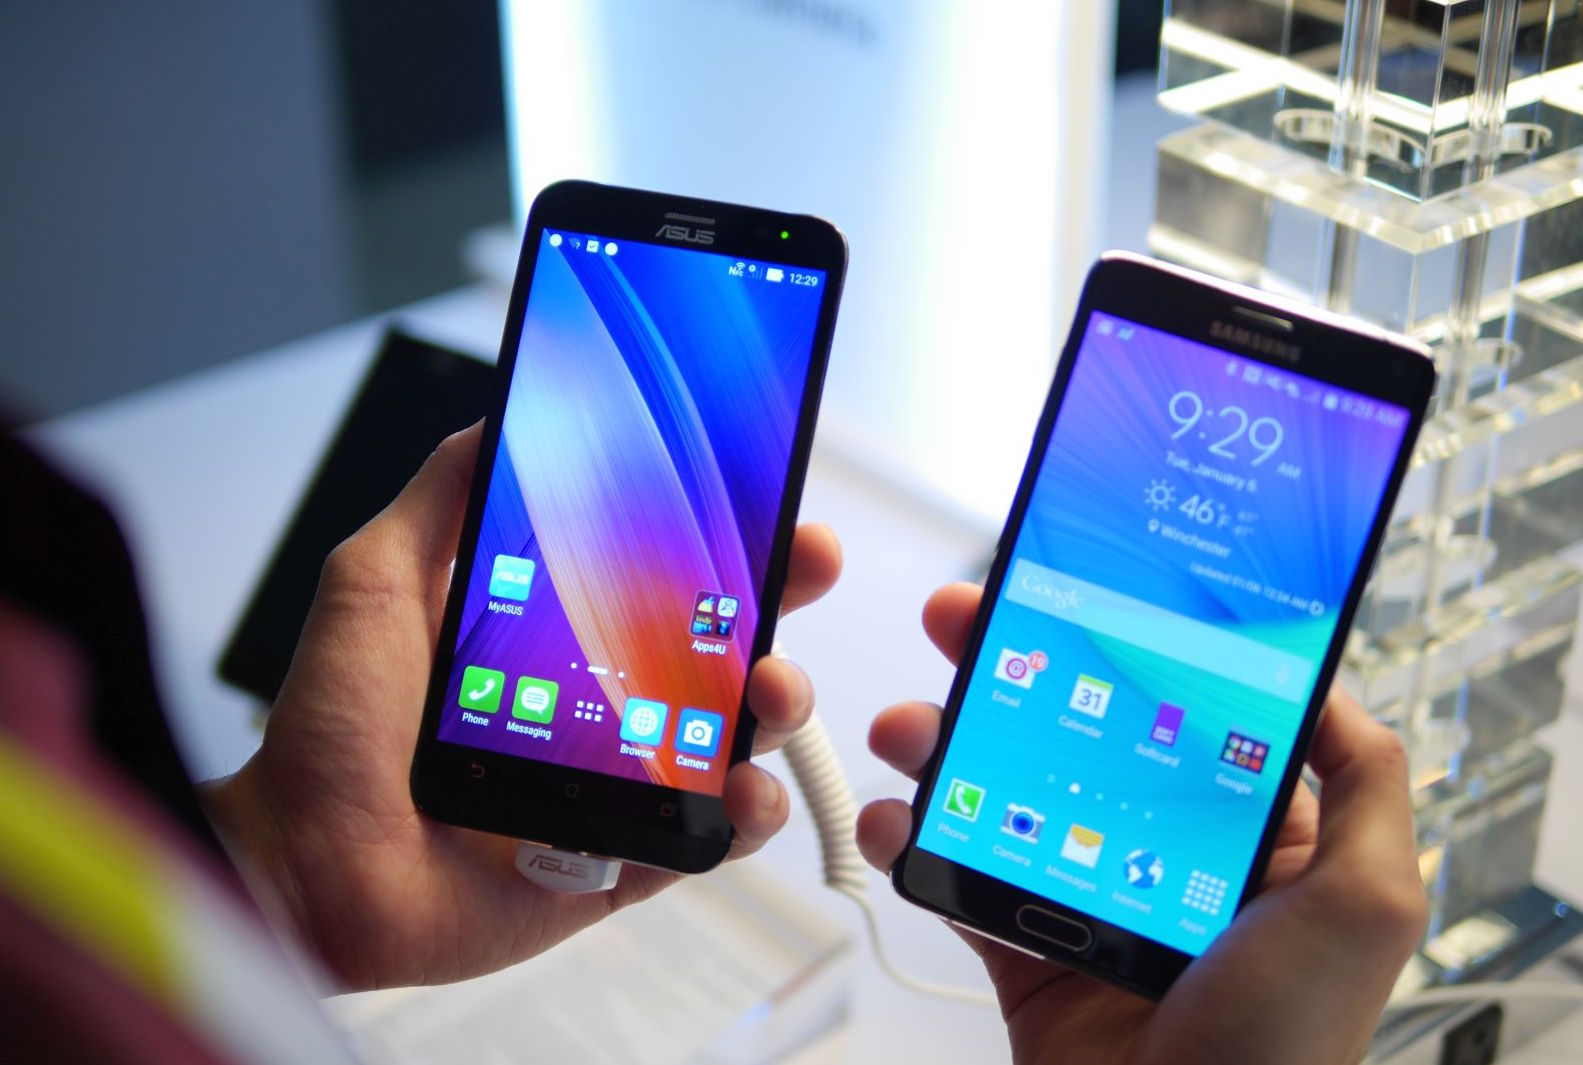 ZenFone 2 vs Note 4